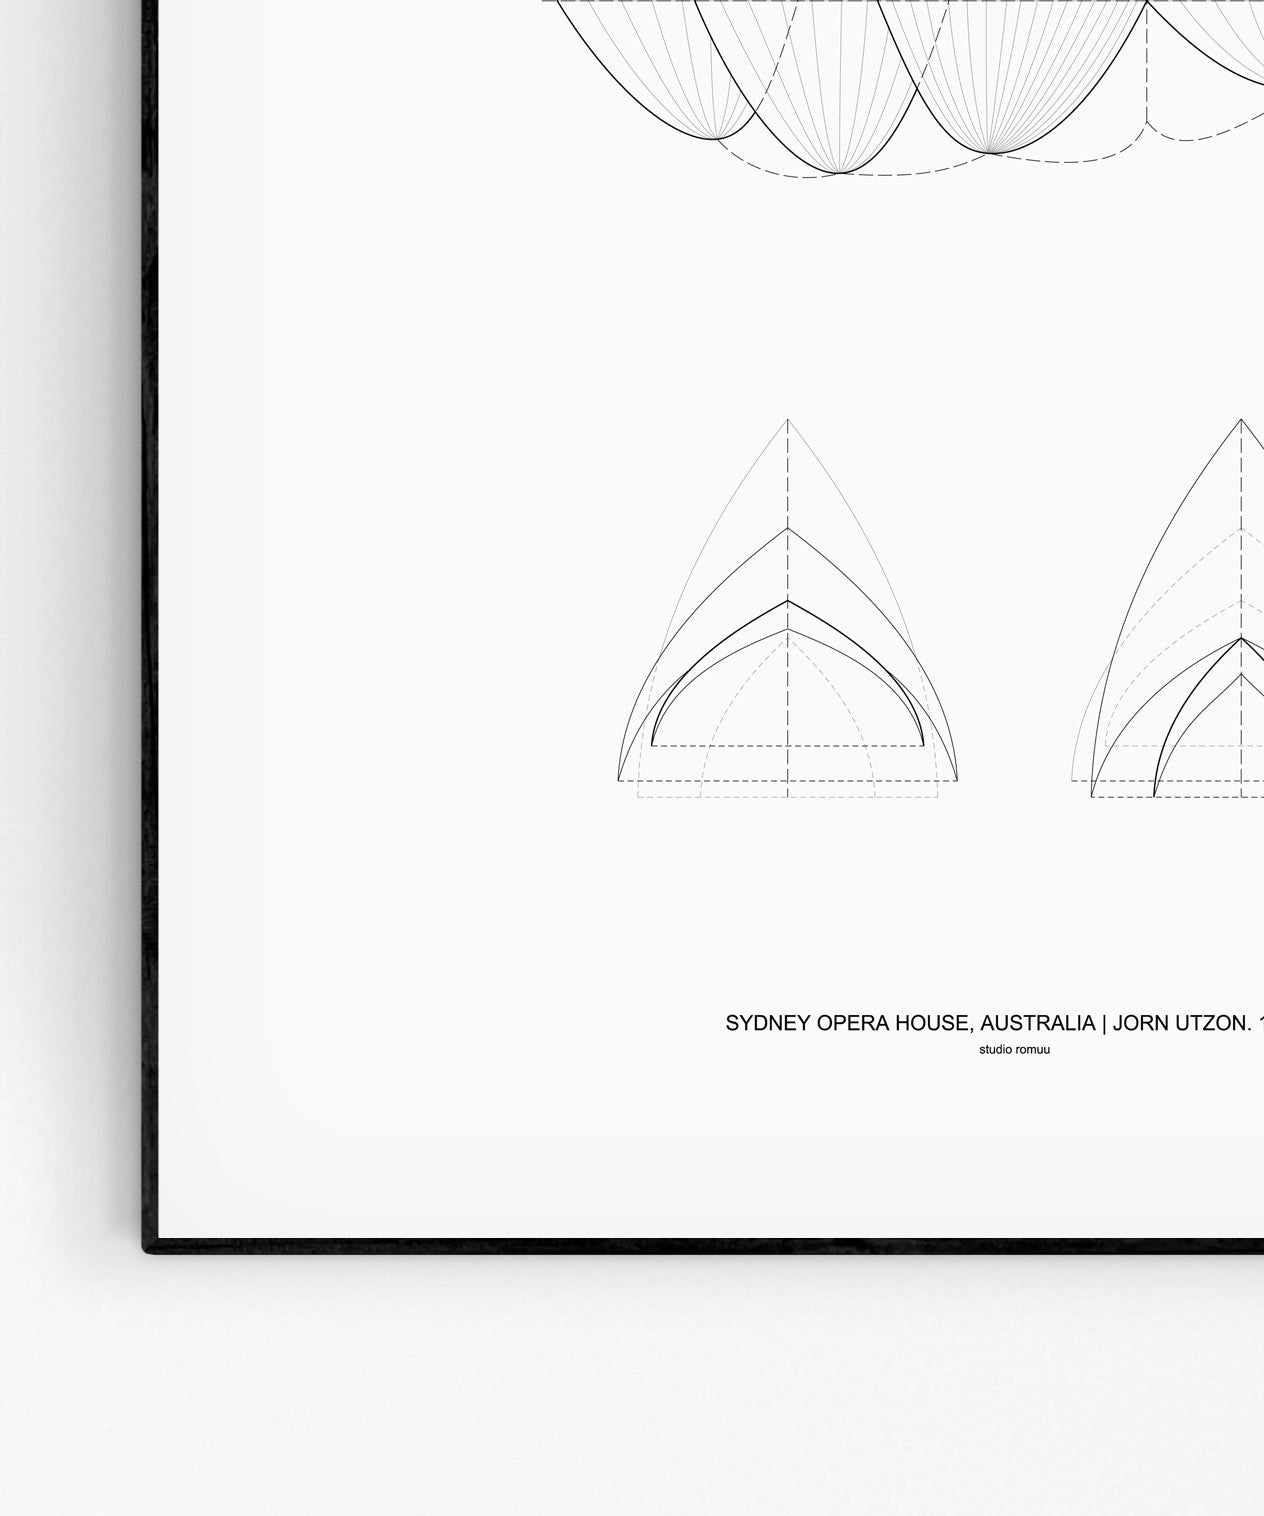 Sydney Opera House Architecture Print by Studio Romuu - detail